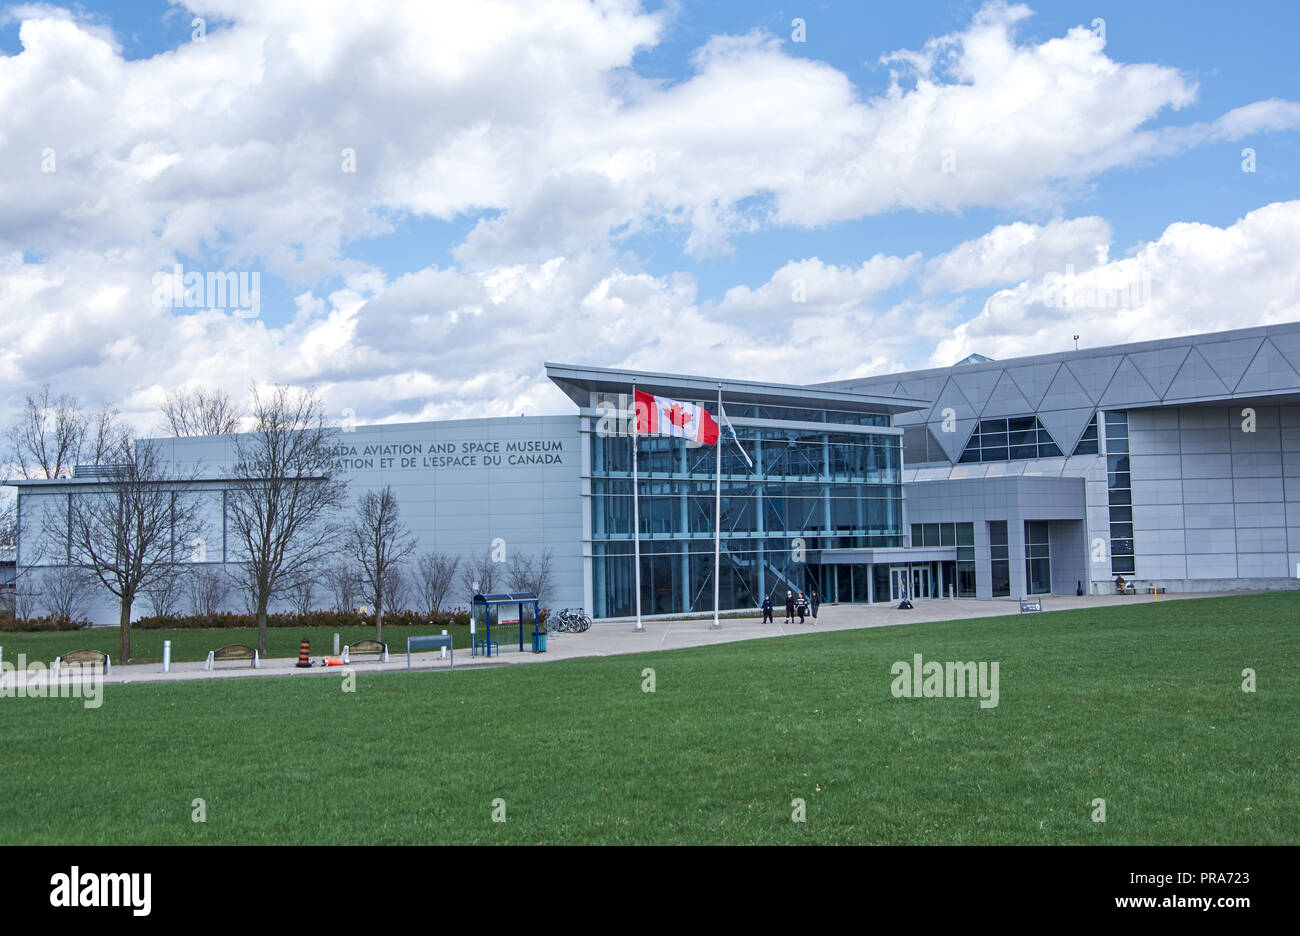 OTTAWA, CANADA - MAY 5, 2018: Canadian Aviation and Space Museum. The Canada Aviation and Space Museum is Canada's national aviation history museum lo - Stock Image